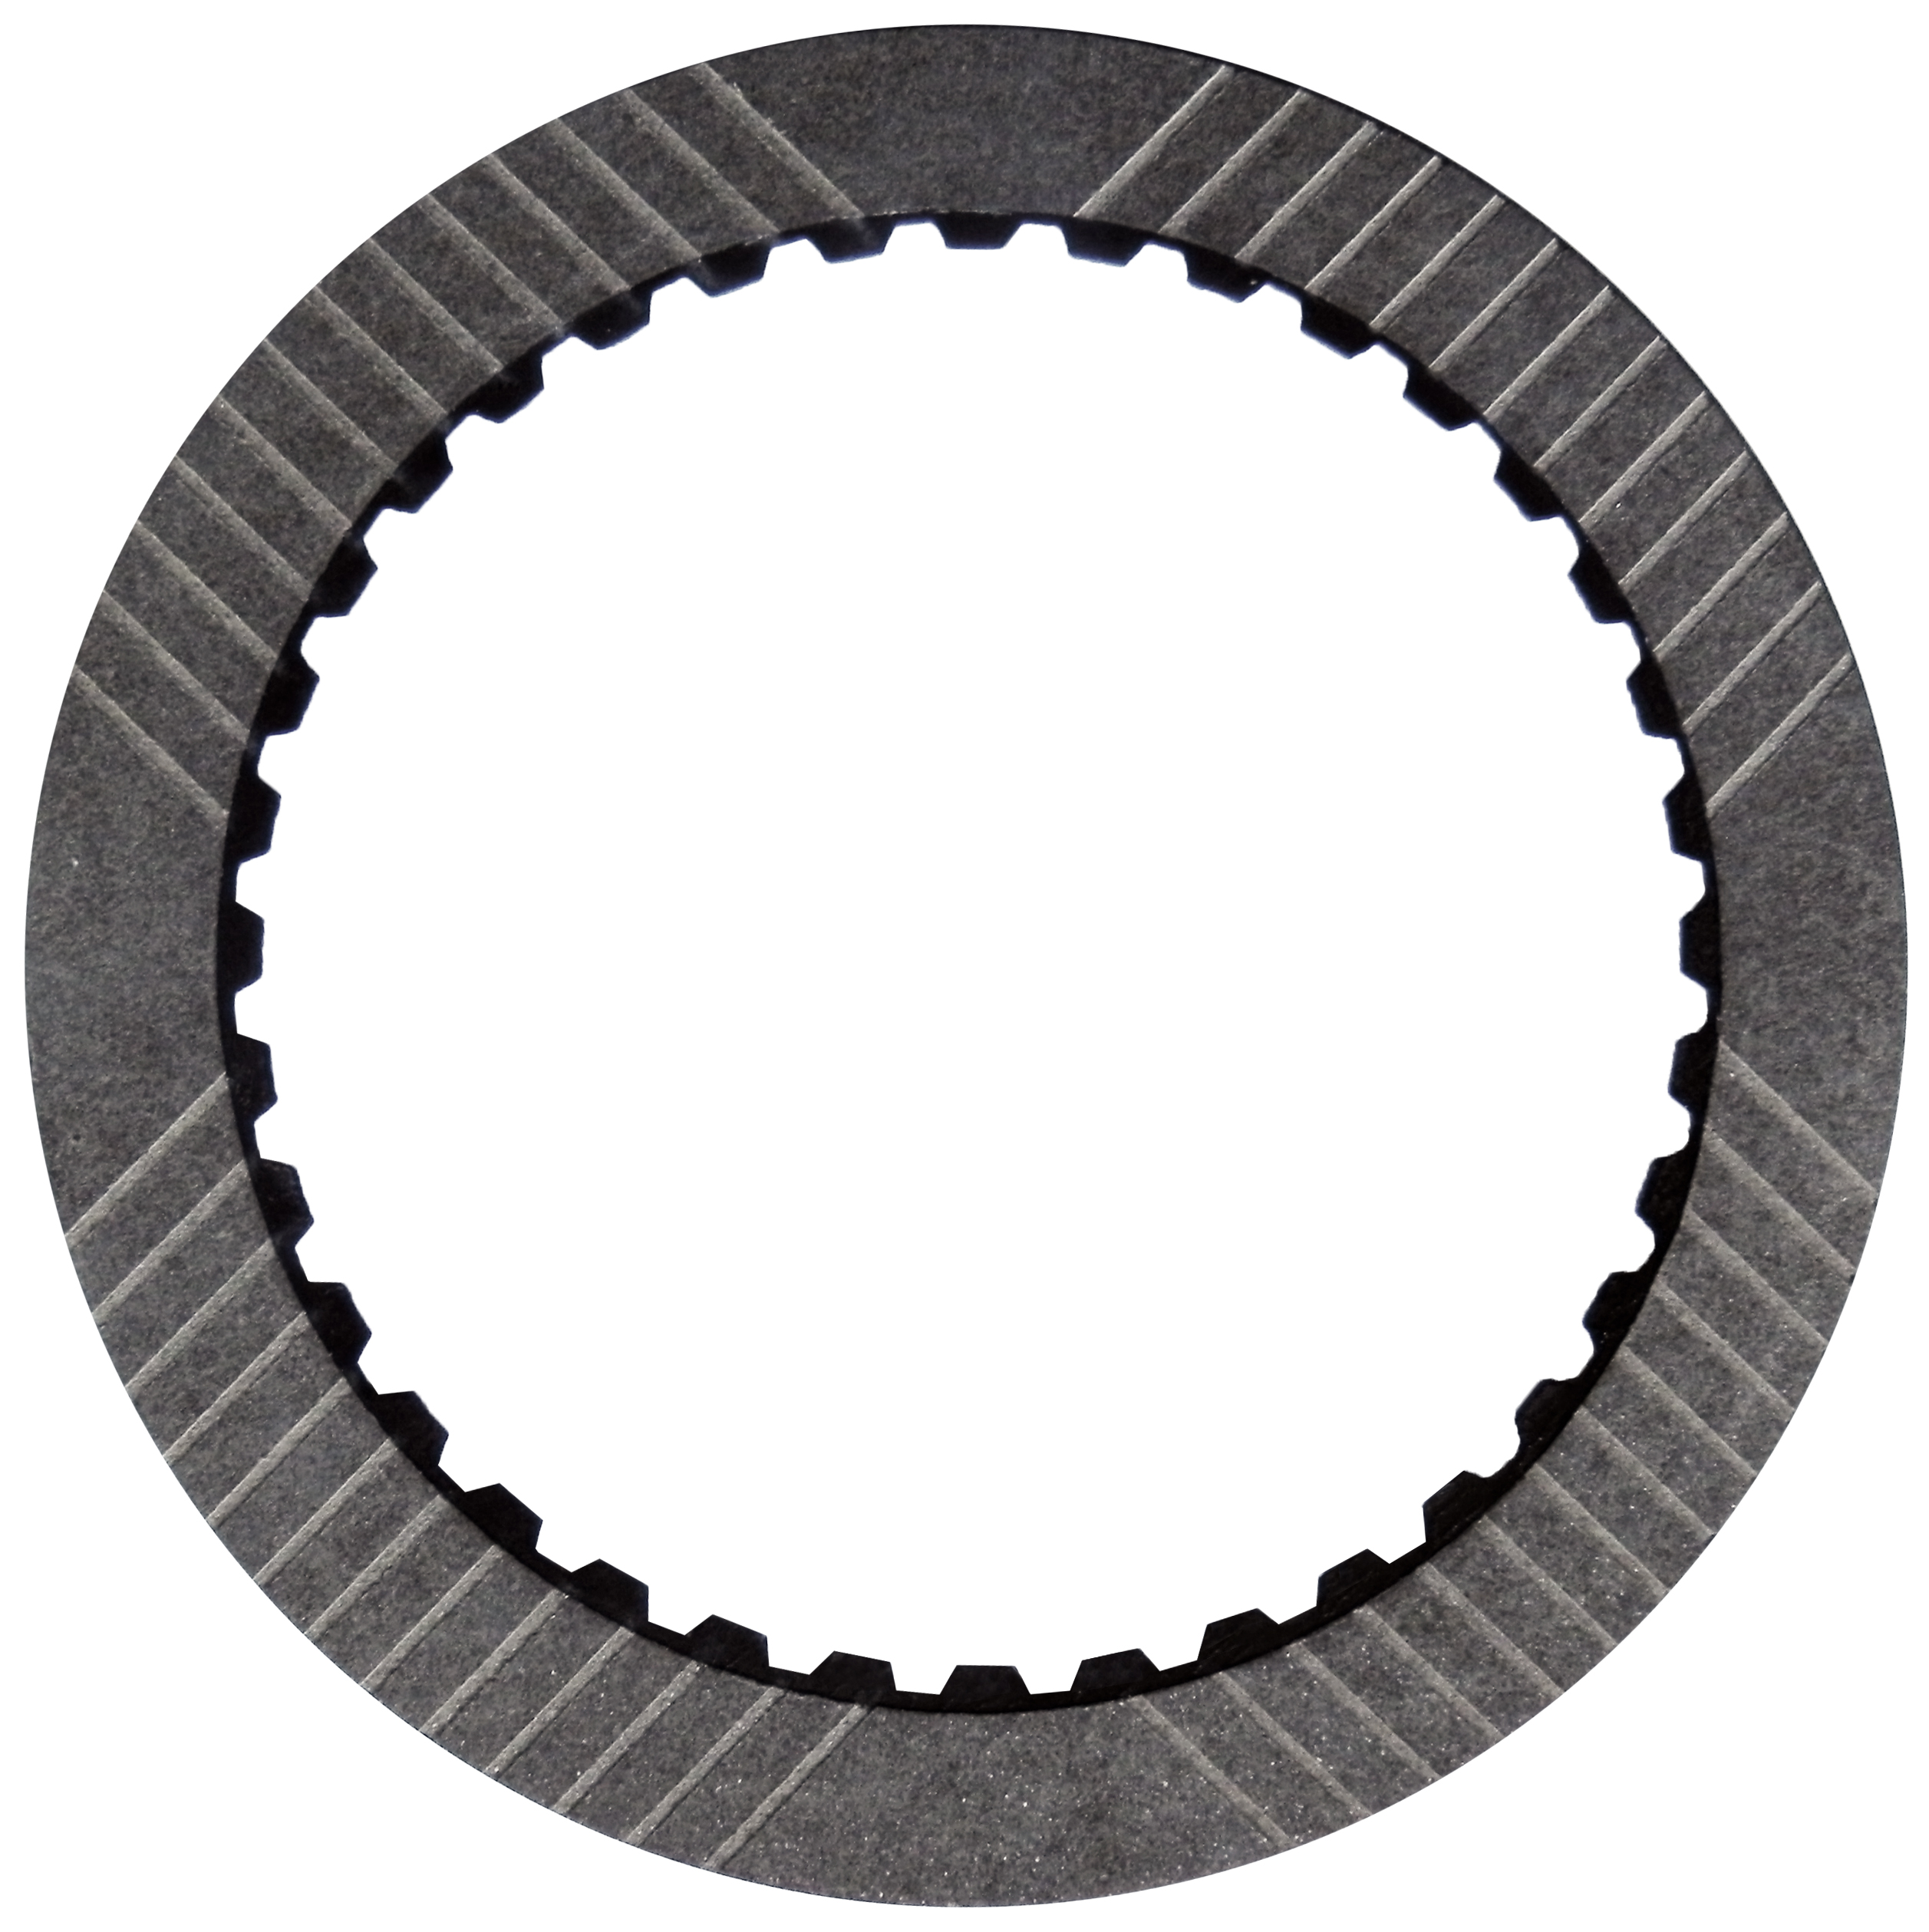 GPZ460 | 2009-2012 Friction Clutch Plate GPZ 2, 3, 4, 6 Brake GPZ